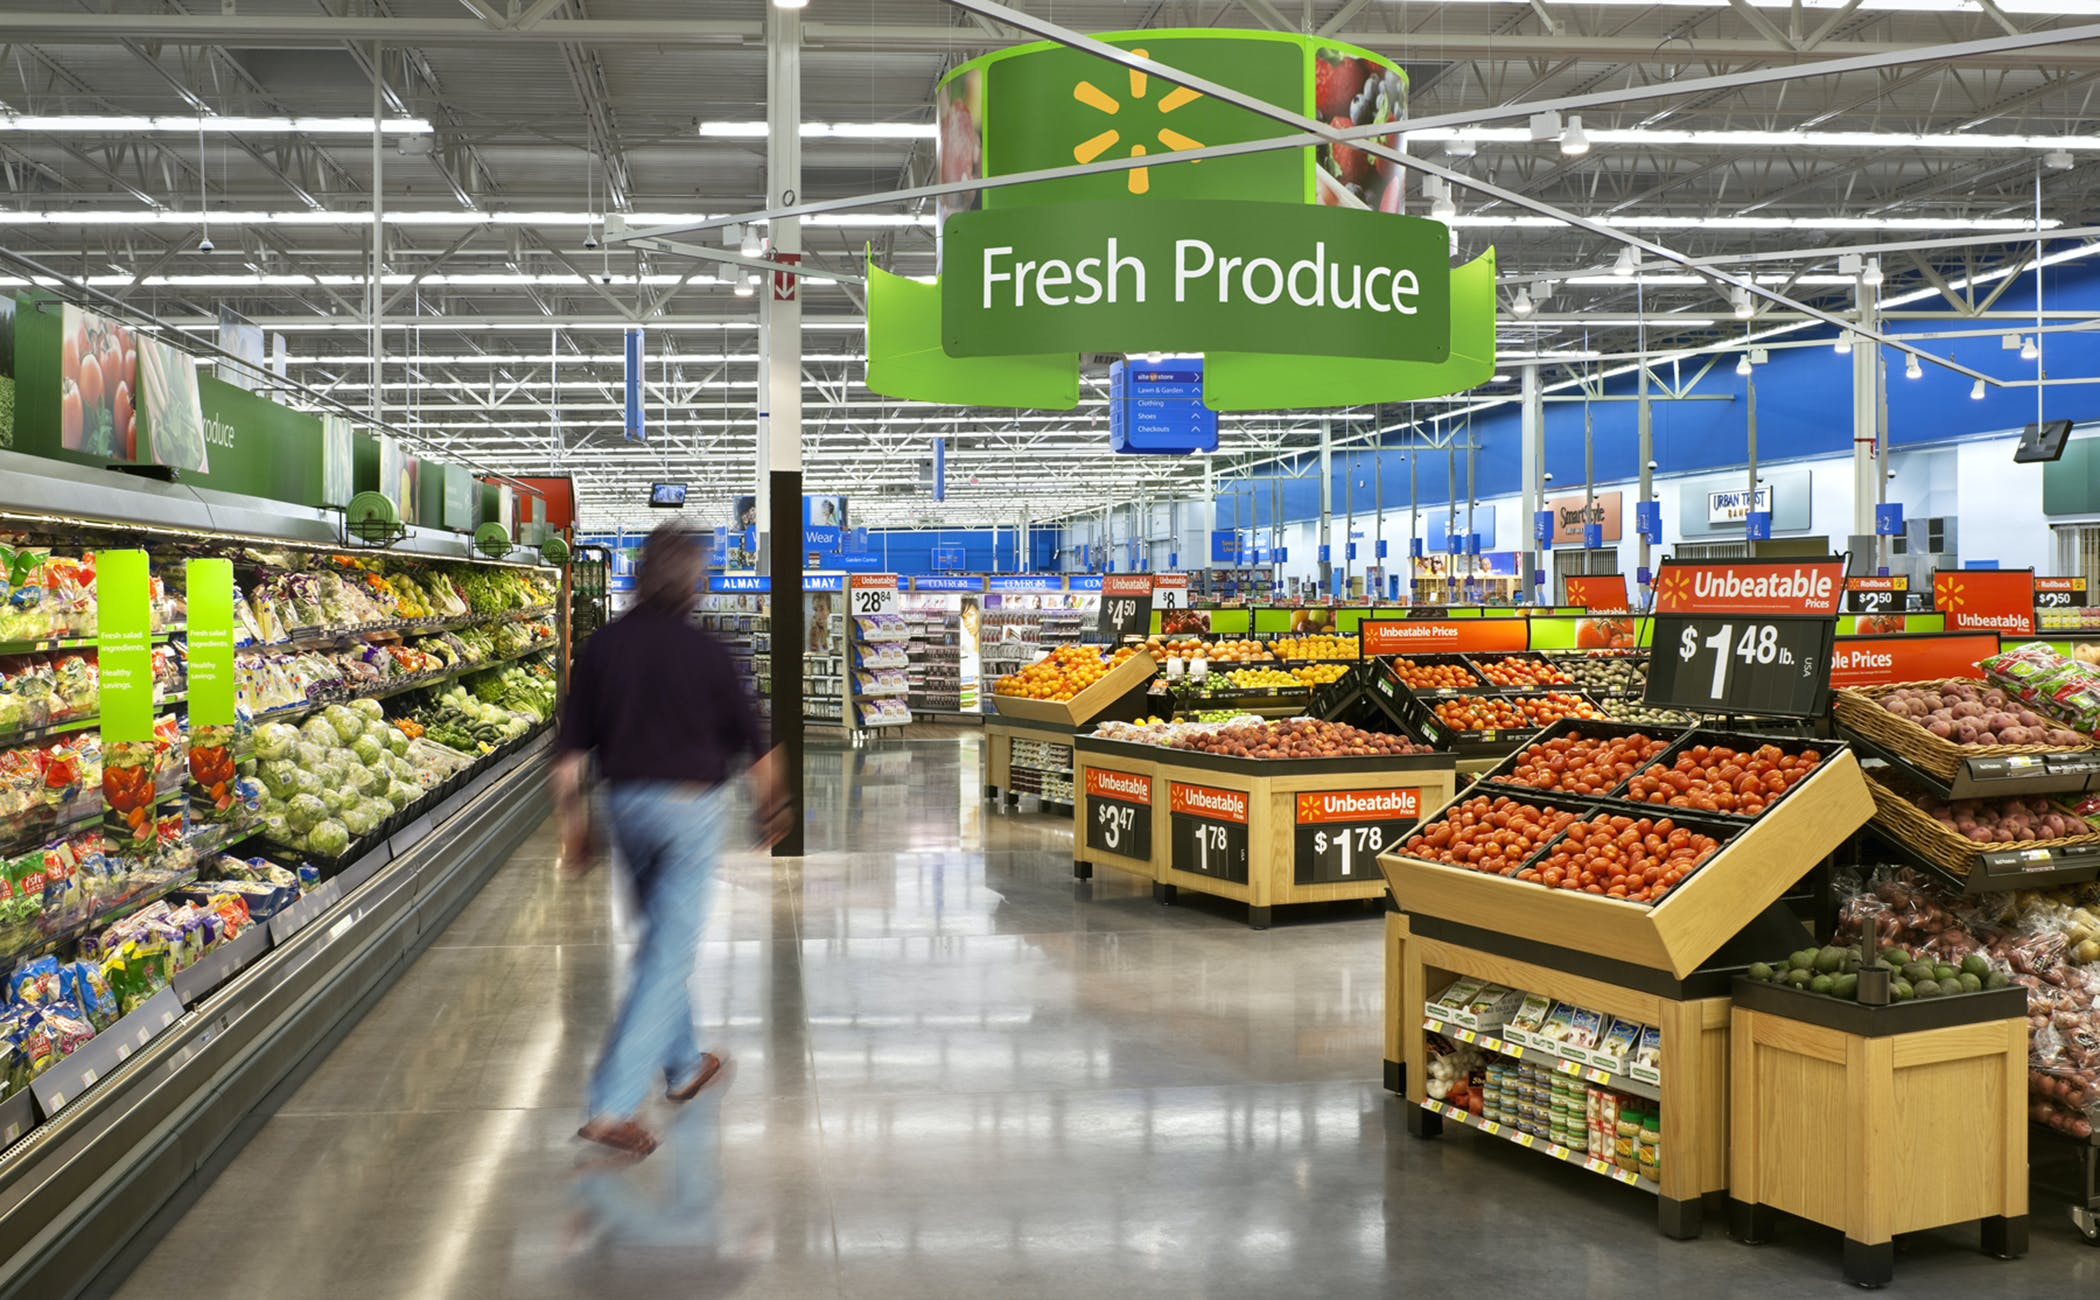 wall mart case Walmart-china case analysis walmart-world's largest retailer, is a successful as a king of retailing in us market after this success, wal-mart stores started eyeing areas beyond its home country and looking at unchartered waters in the overseas markets.